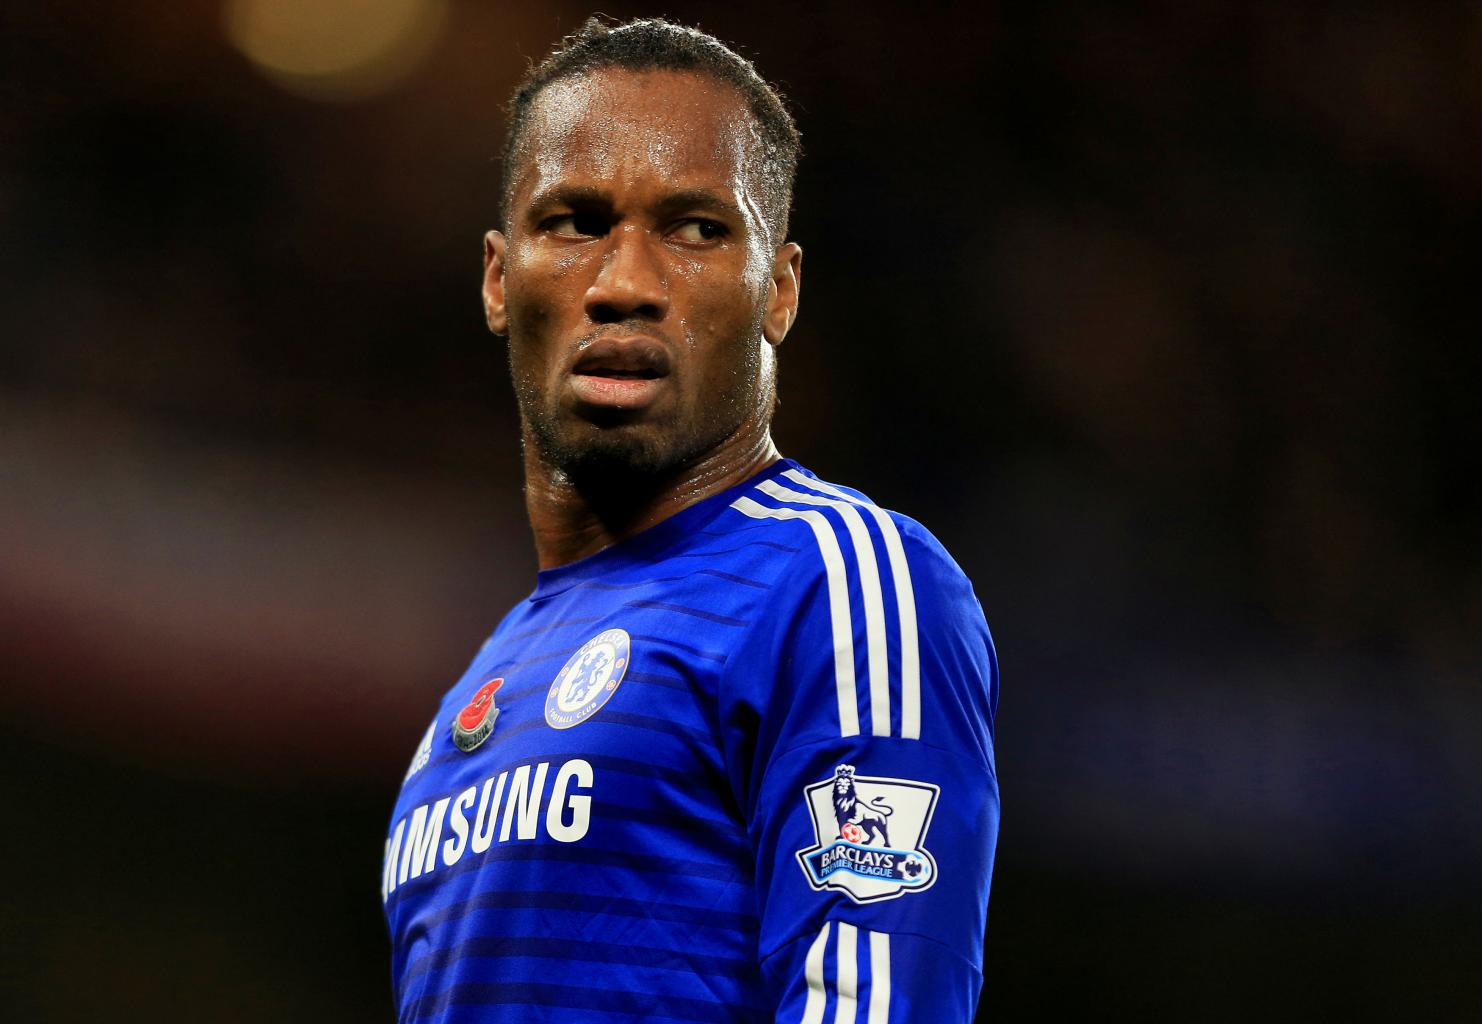 Montreal Impact Star Didier Drogba  's Foundation Cleared Of Fraud Charges After 7-Month Investigation